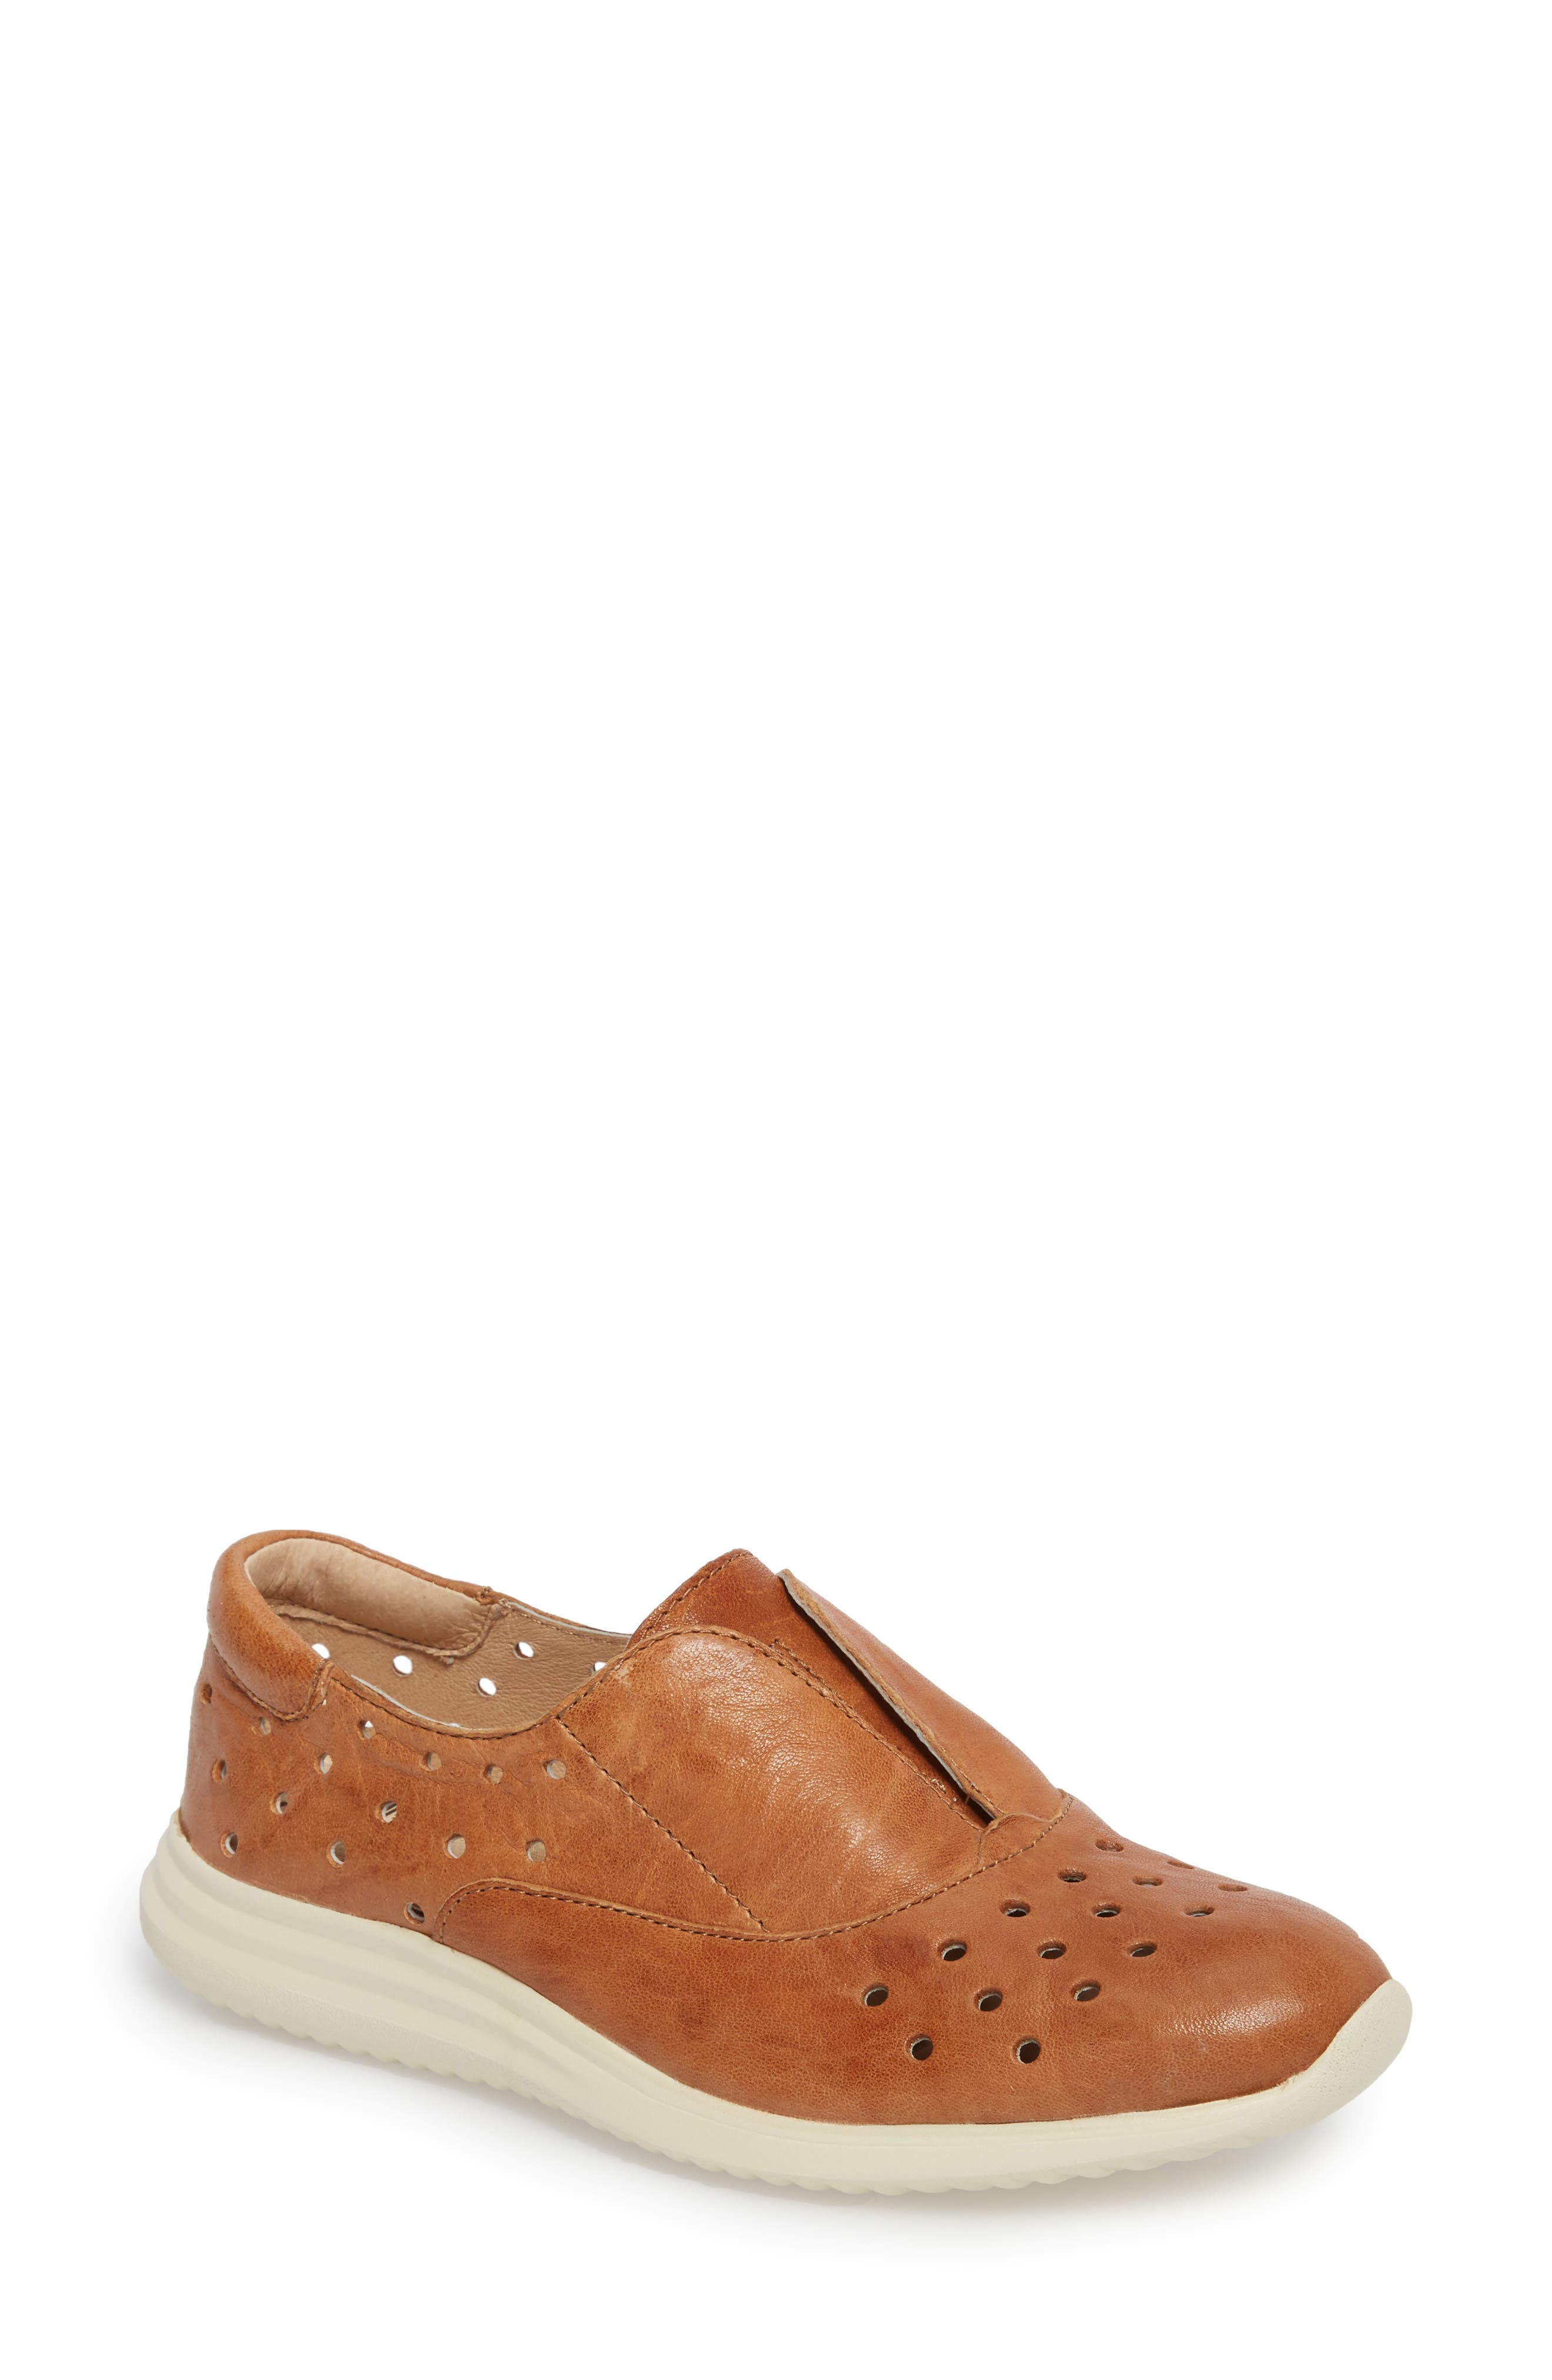 Noreen Slip-On Sneaker,                             Main thumbnail 1, color,                             Luggage Leather